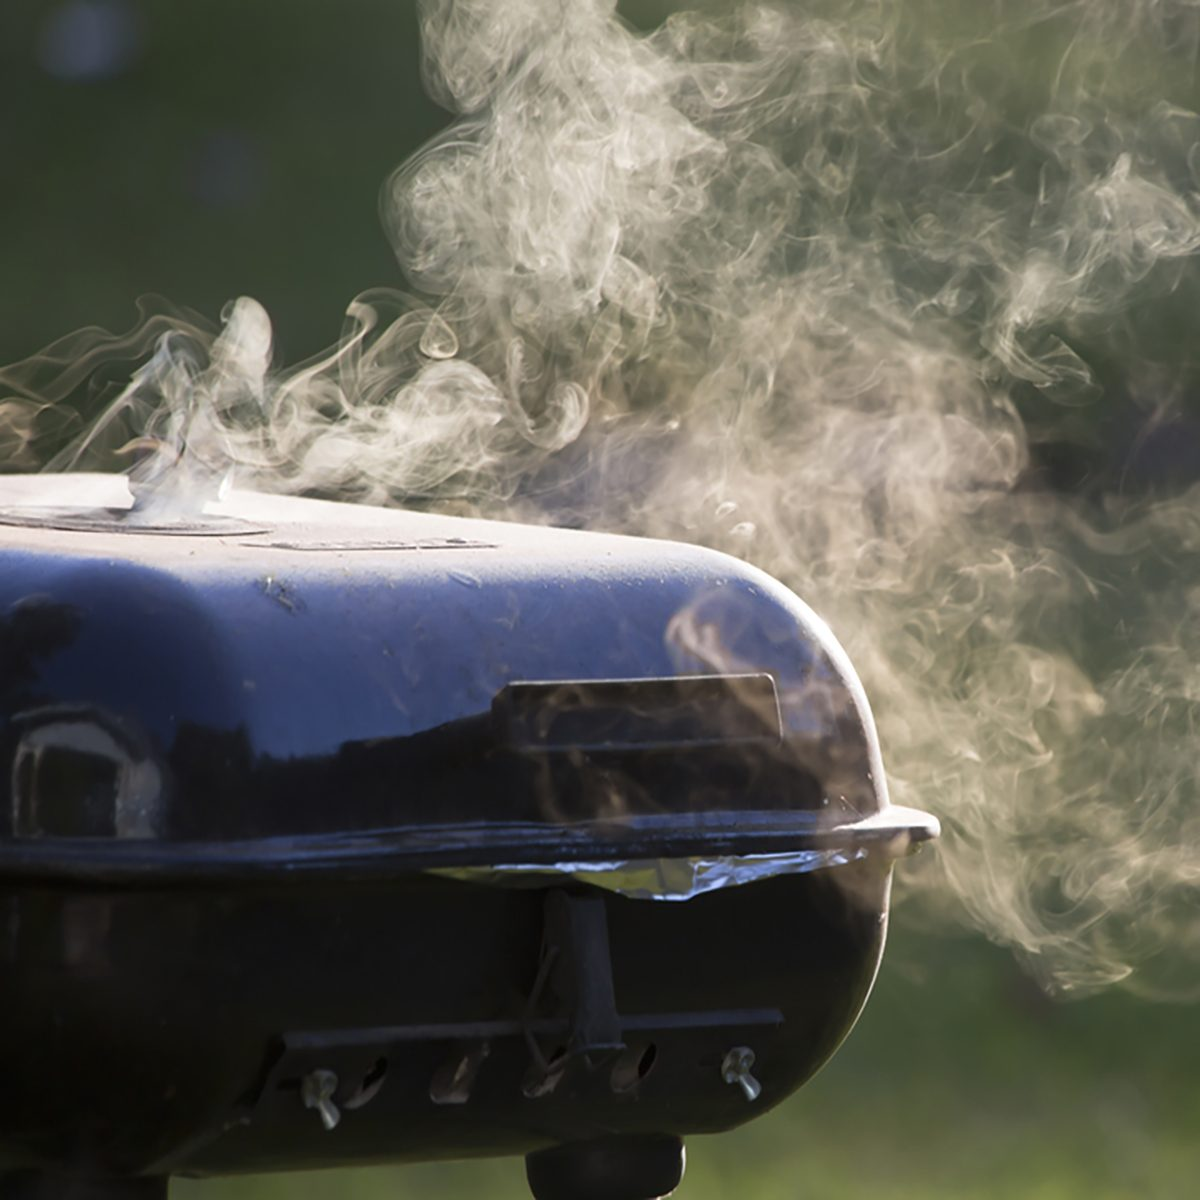 Smoke from closed grill